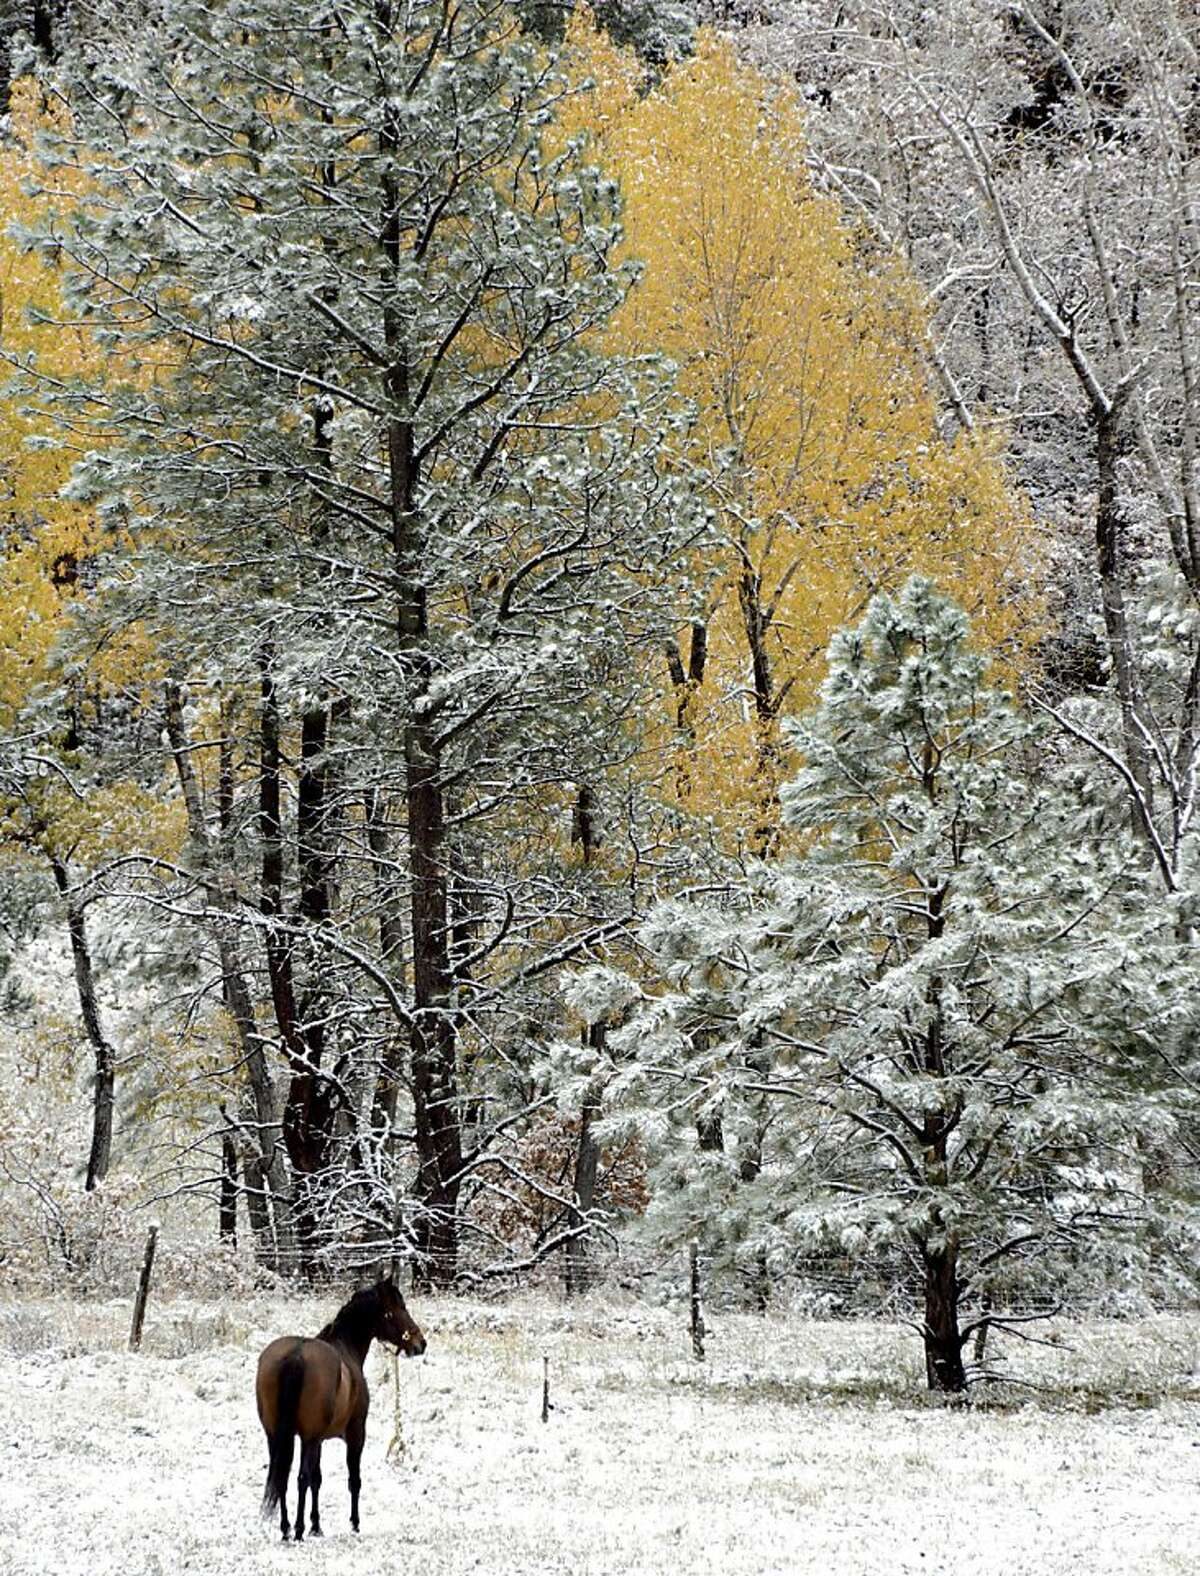 If it weren't for the aspens, one might think it's already winter in Cowles, N.M.